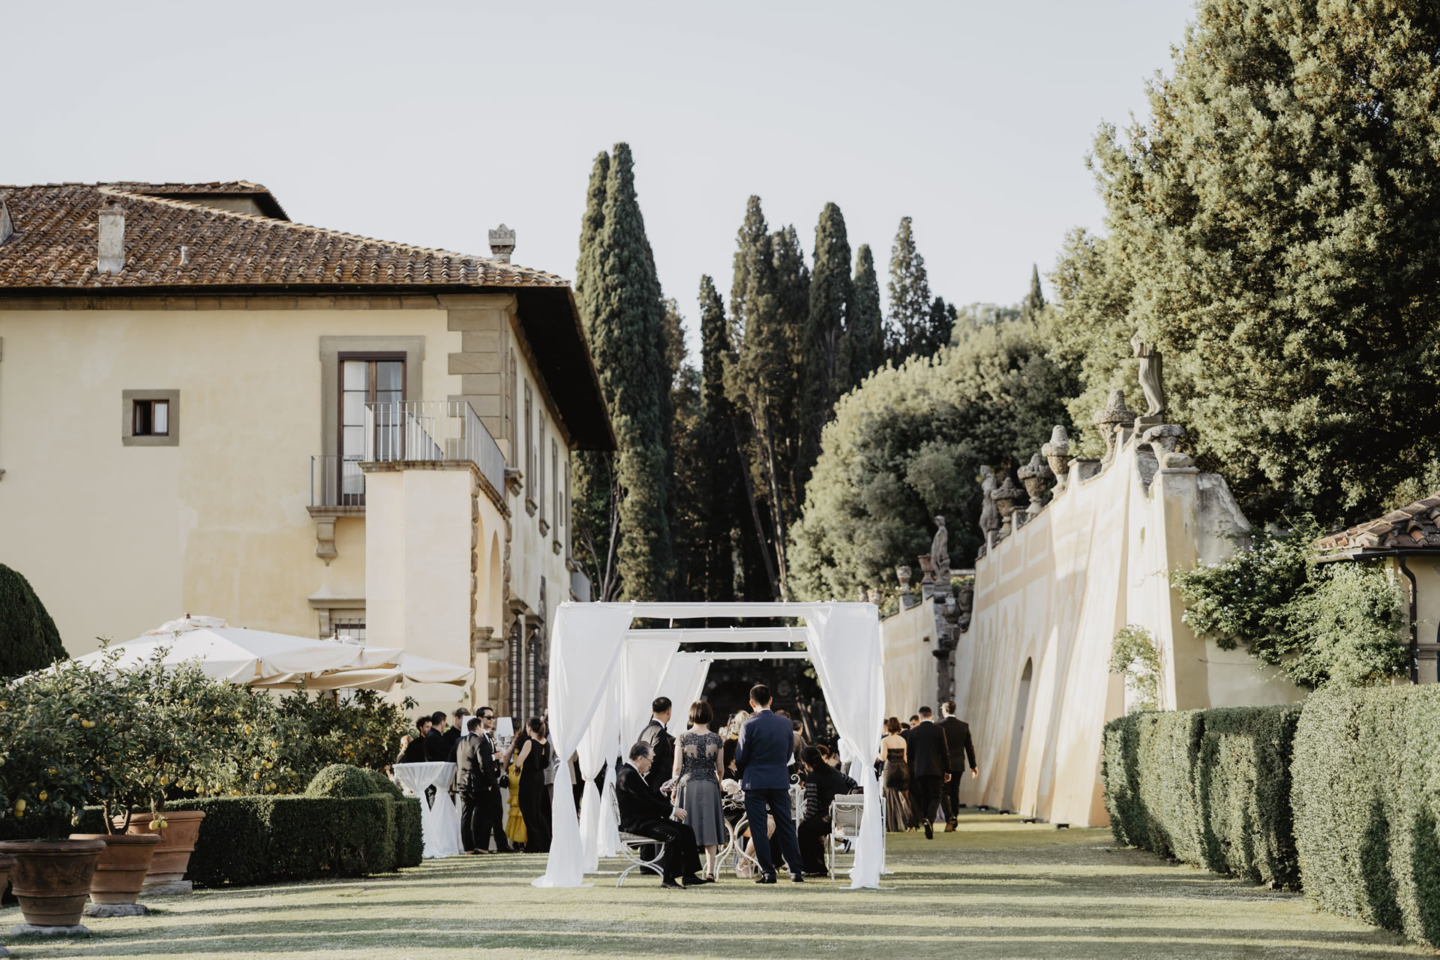 - 64 :: From Los angeles to Florence: a glamour asiatic wedding :: Luxury wedding photography - 63 ::  - 64